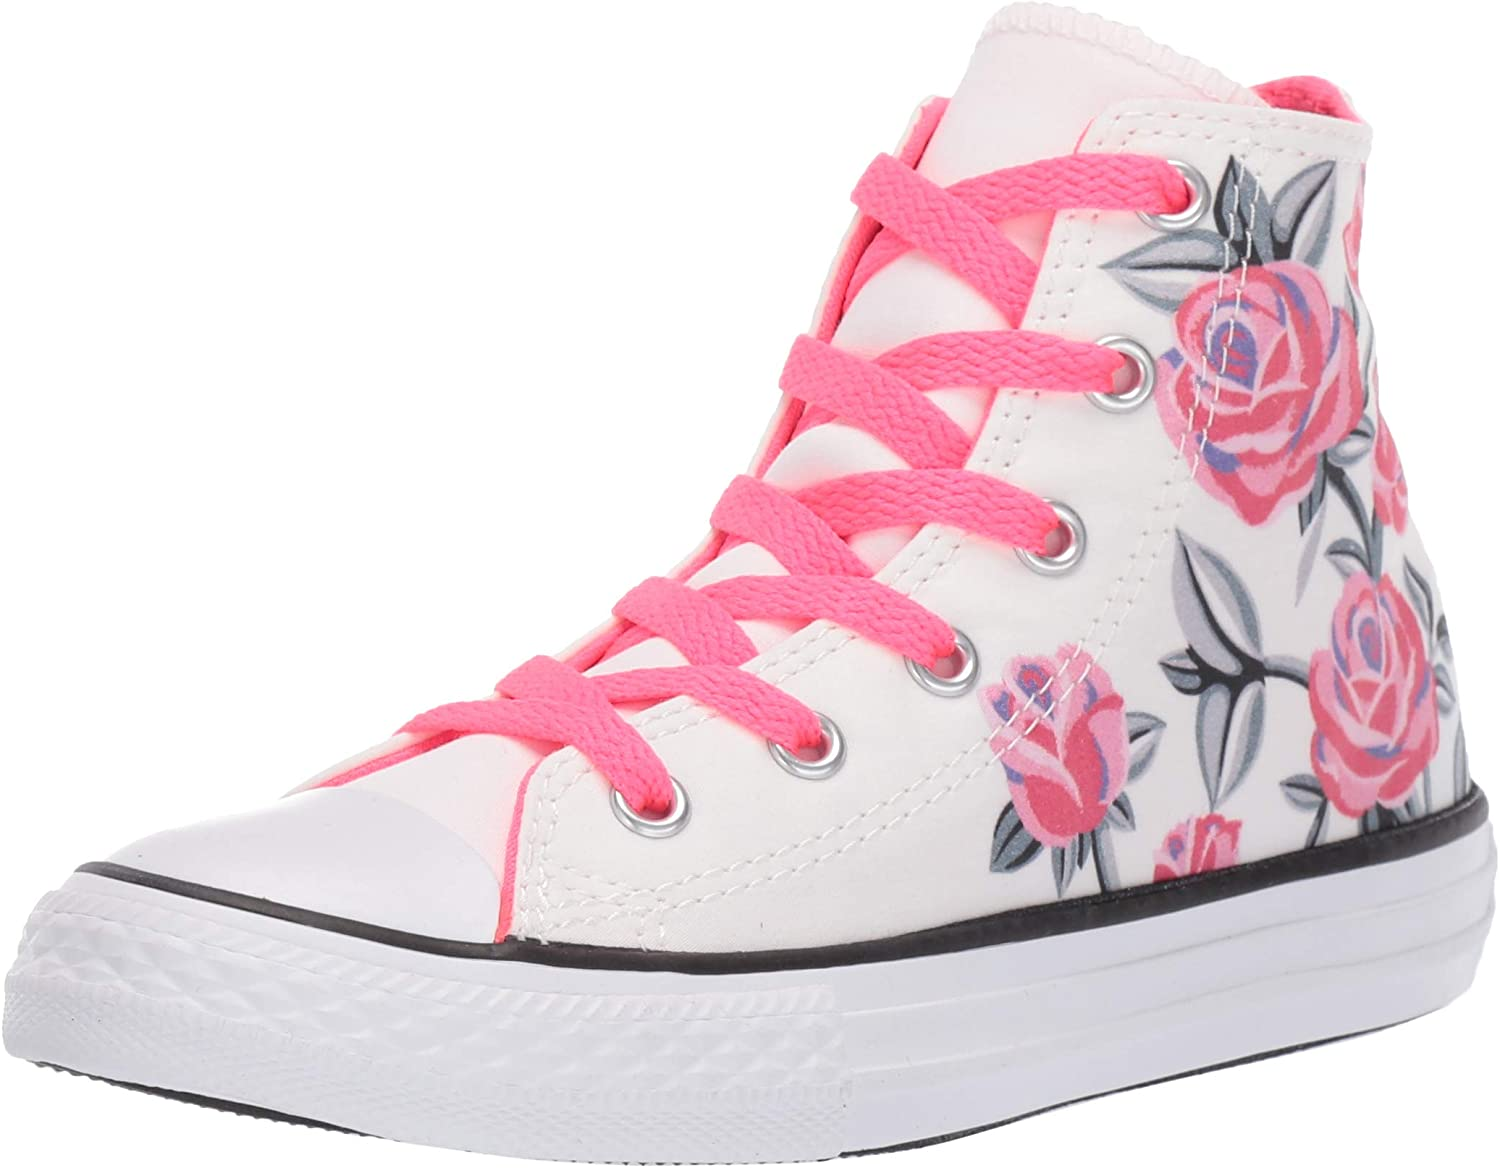 Converse Unisex-Child Kids' Chuck Taylor All Star Graphic High Top Sneaker